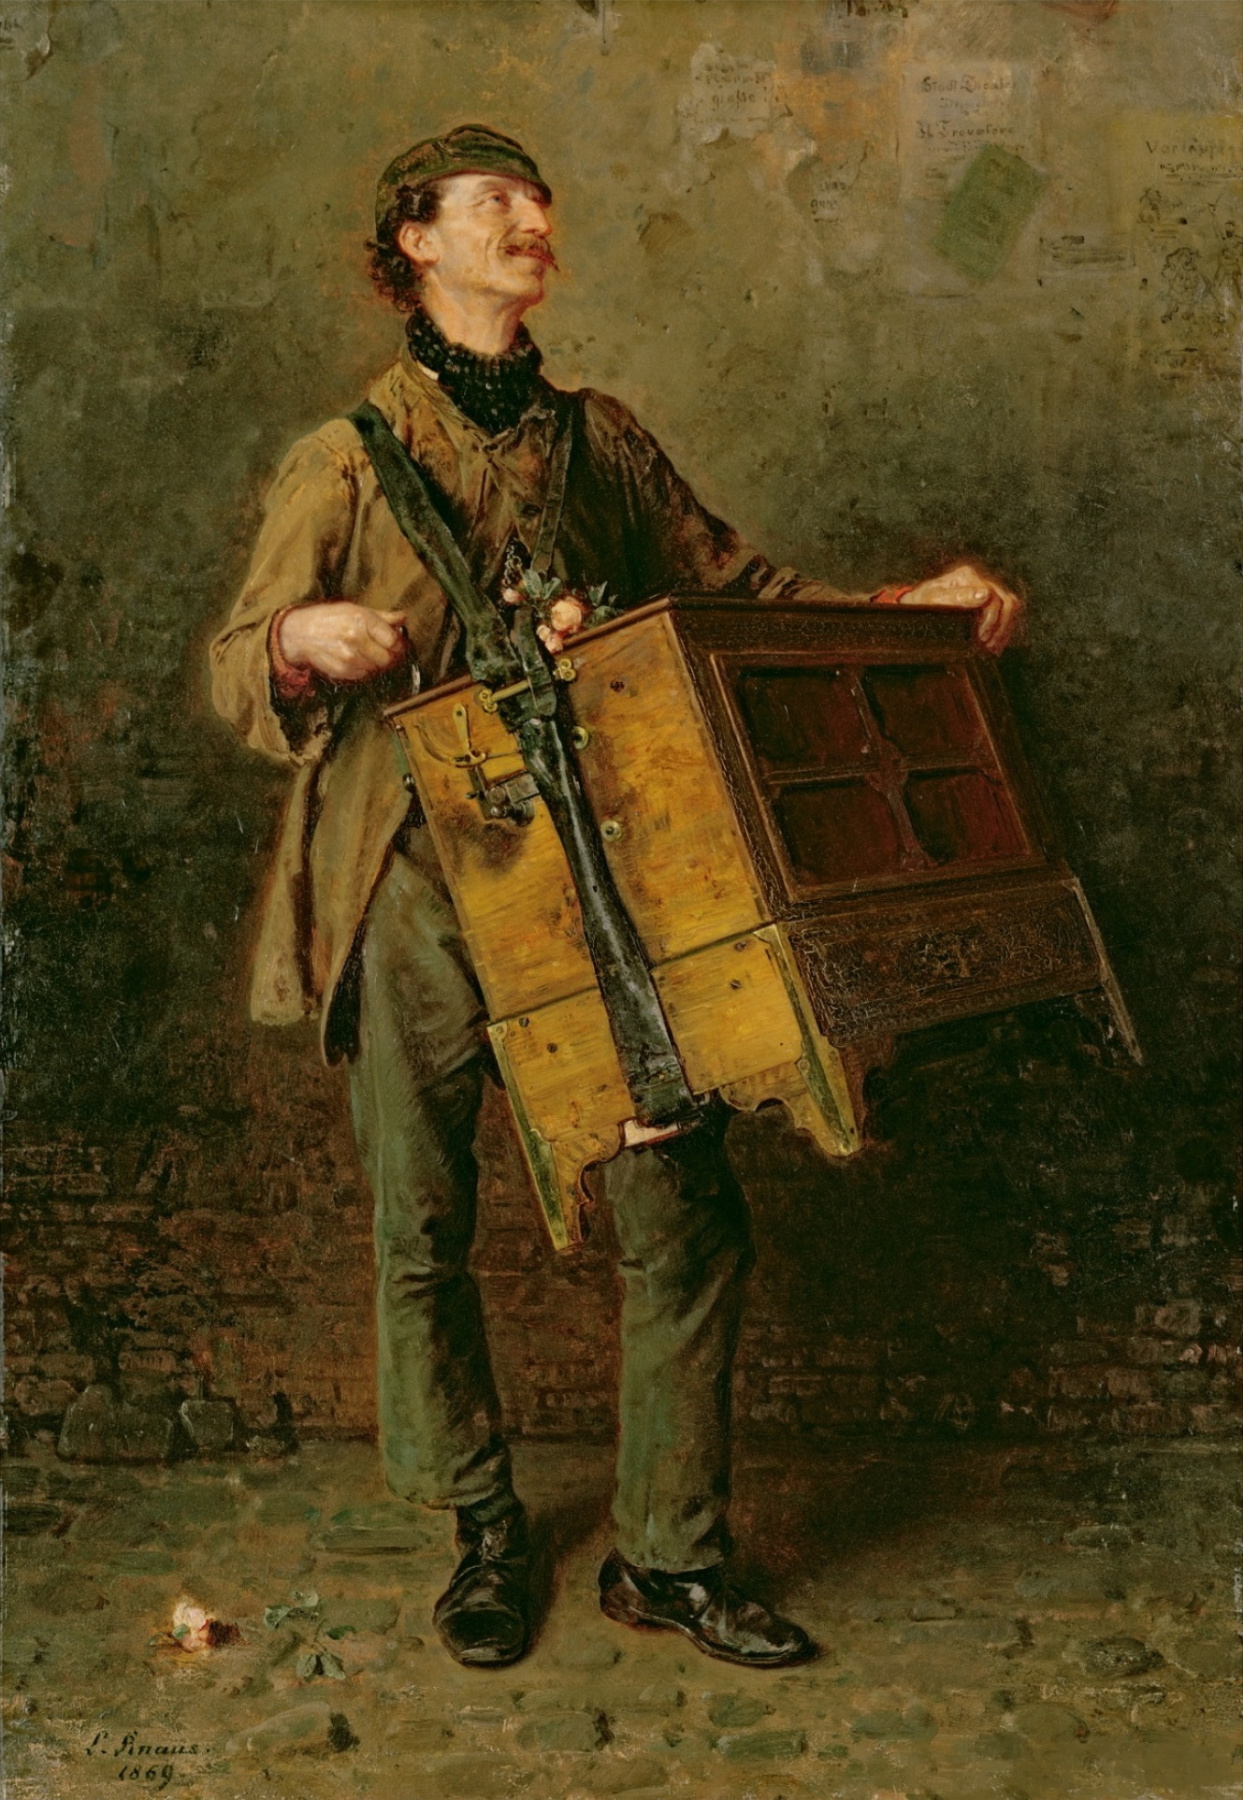 Ludwig Knaus. Musician with a wheeled lyre